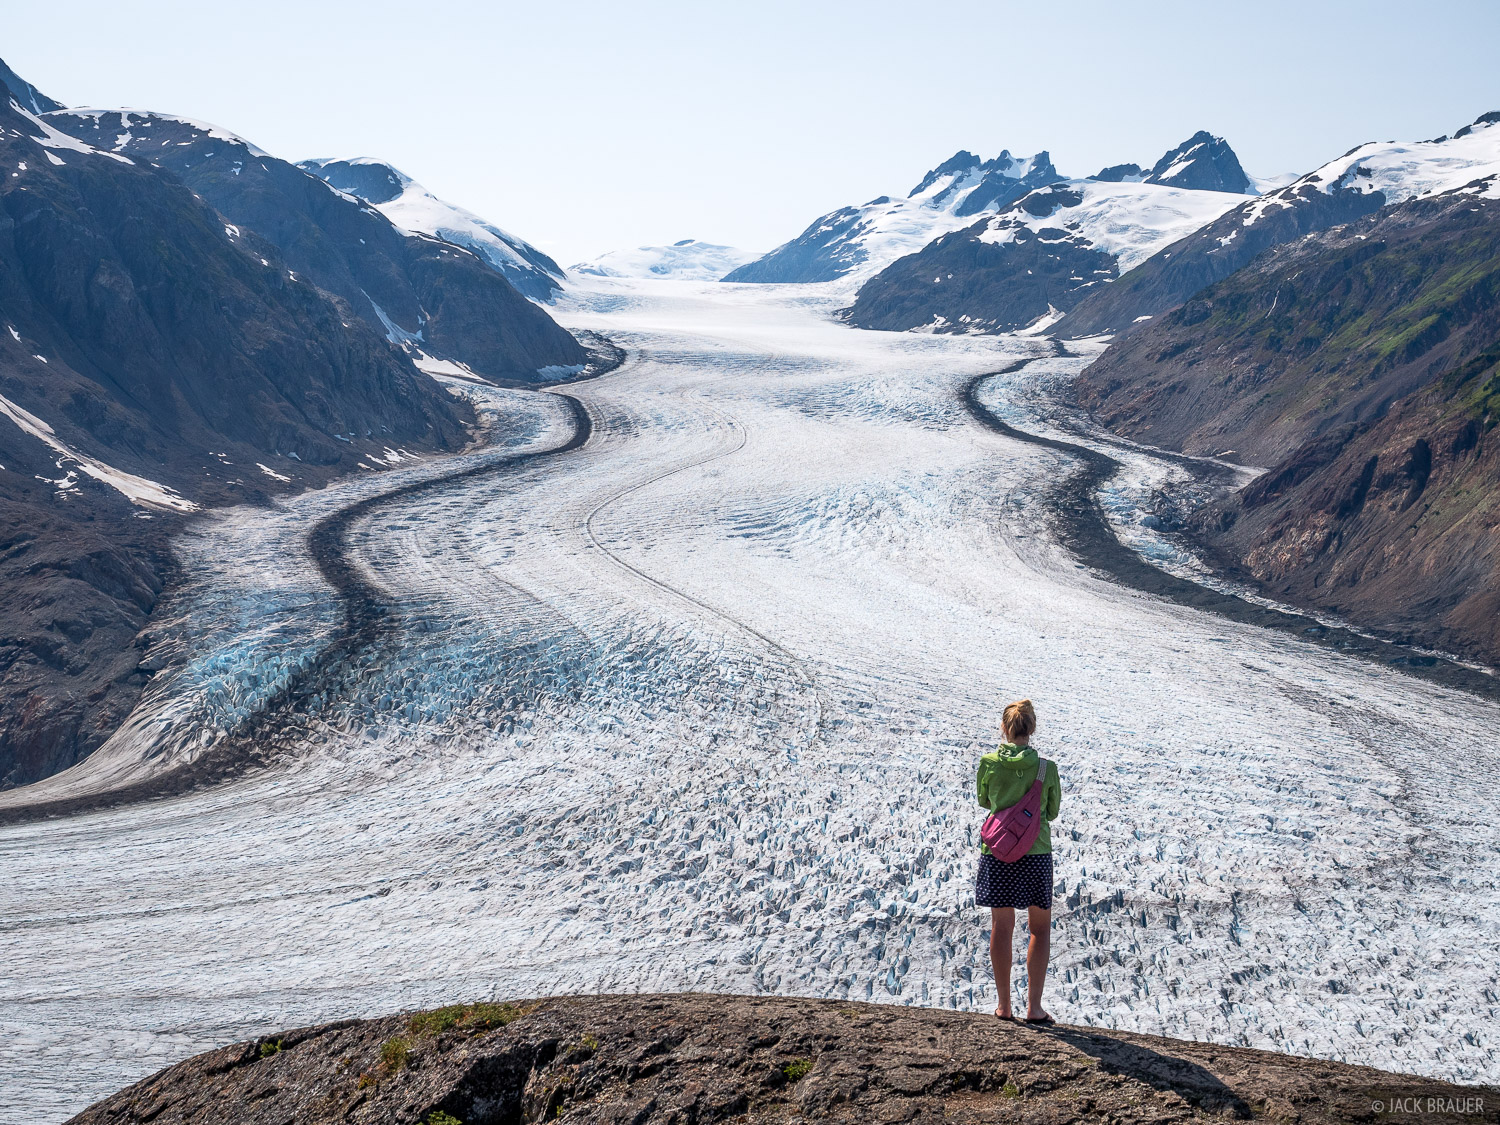 Alaska, Hyder, Salmon Glacier, photo